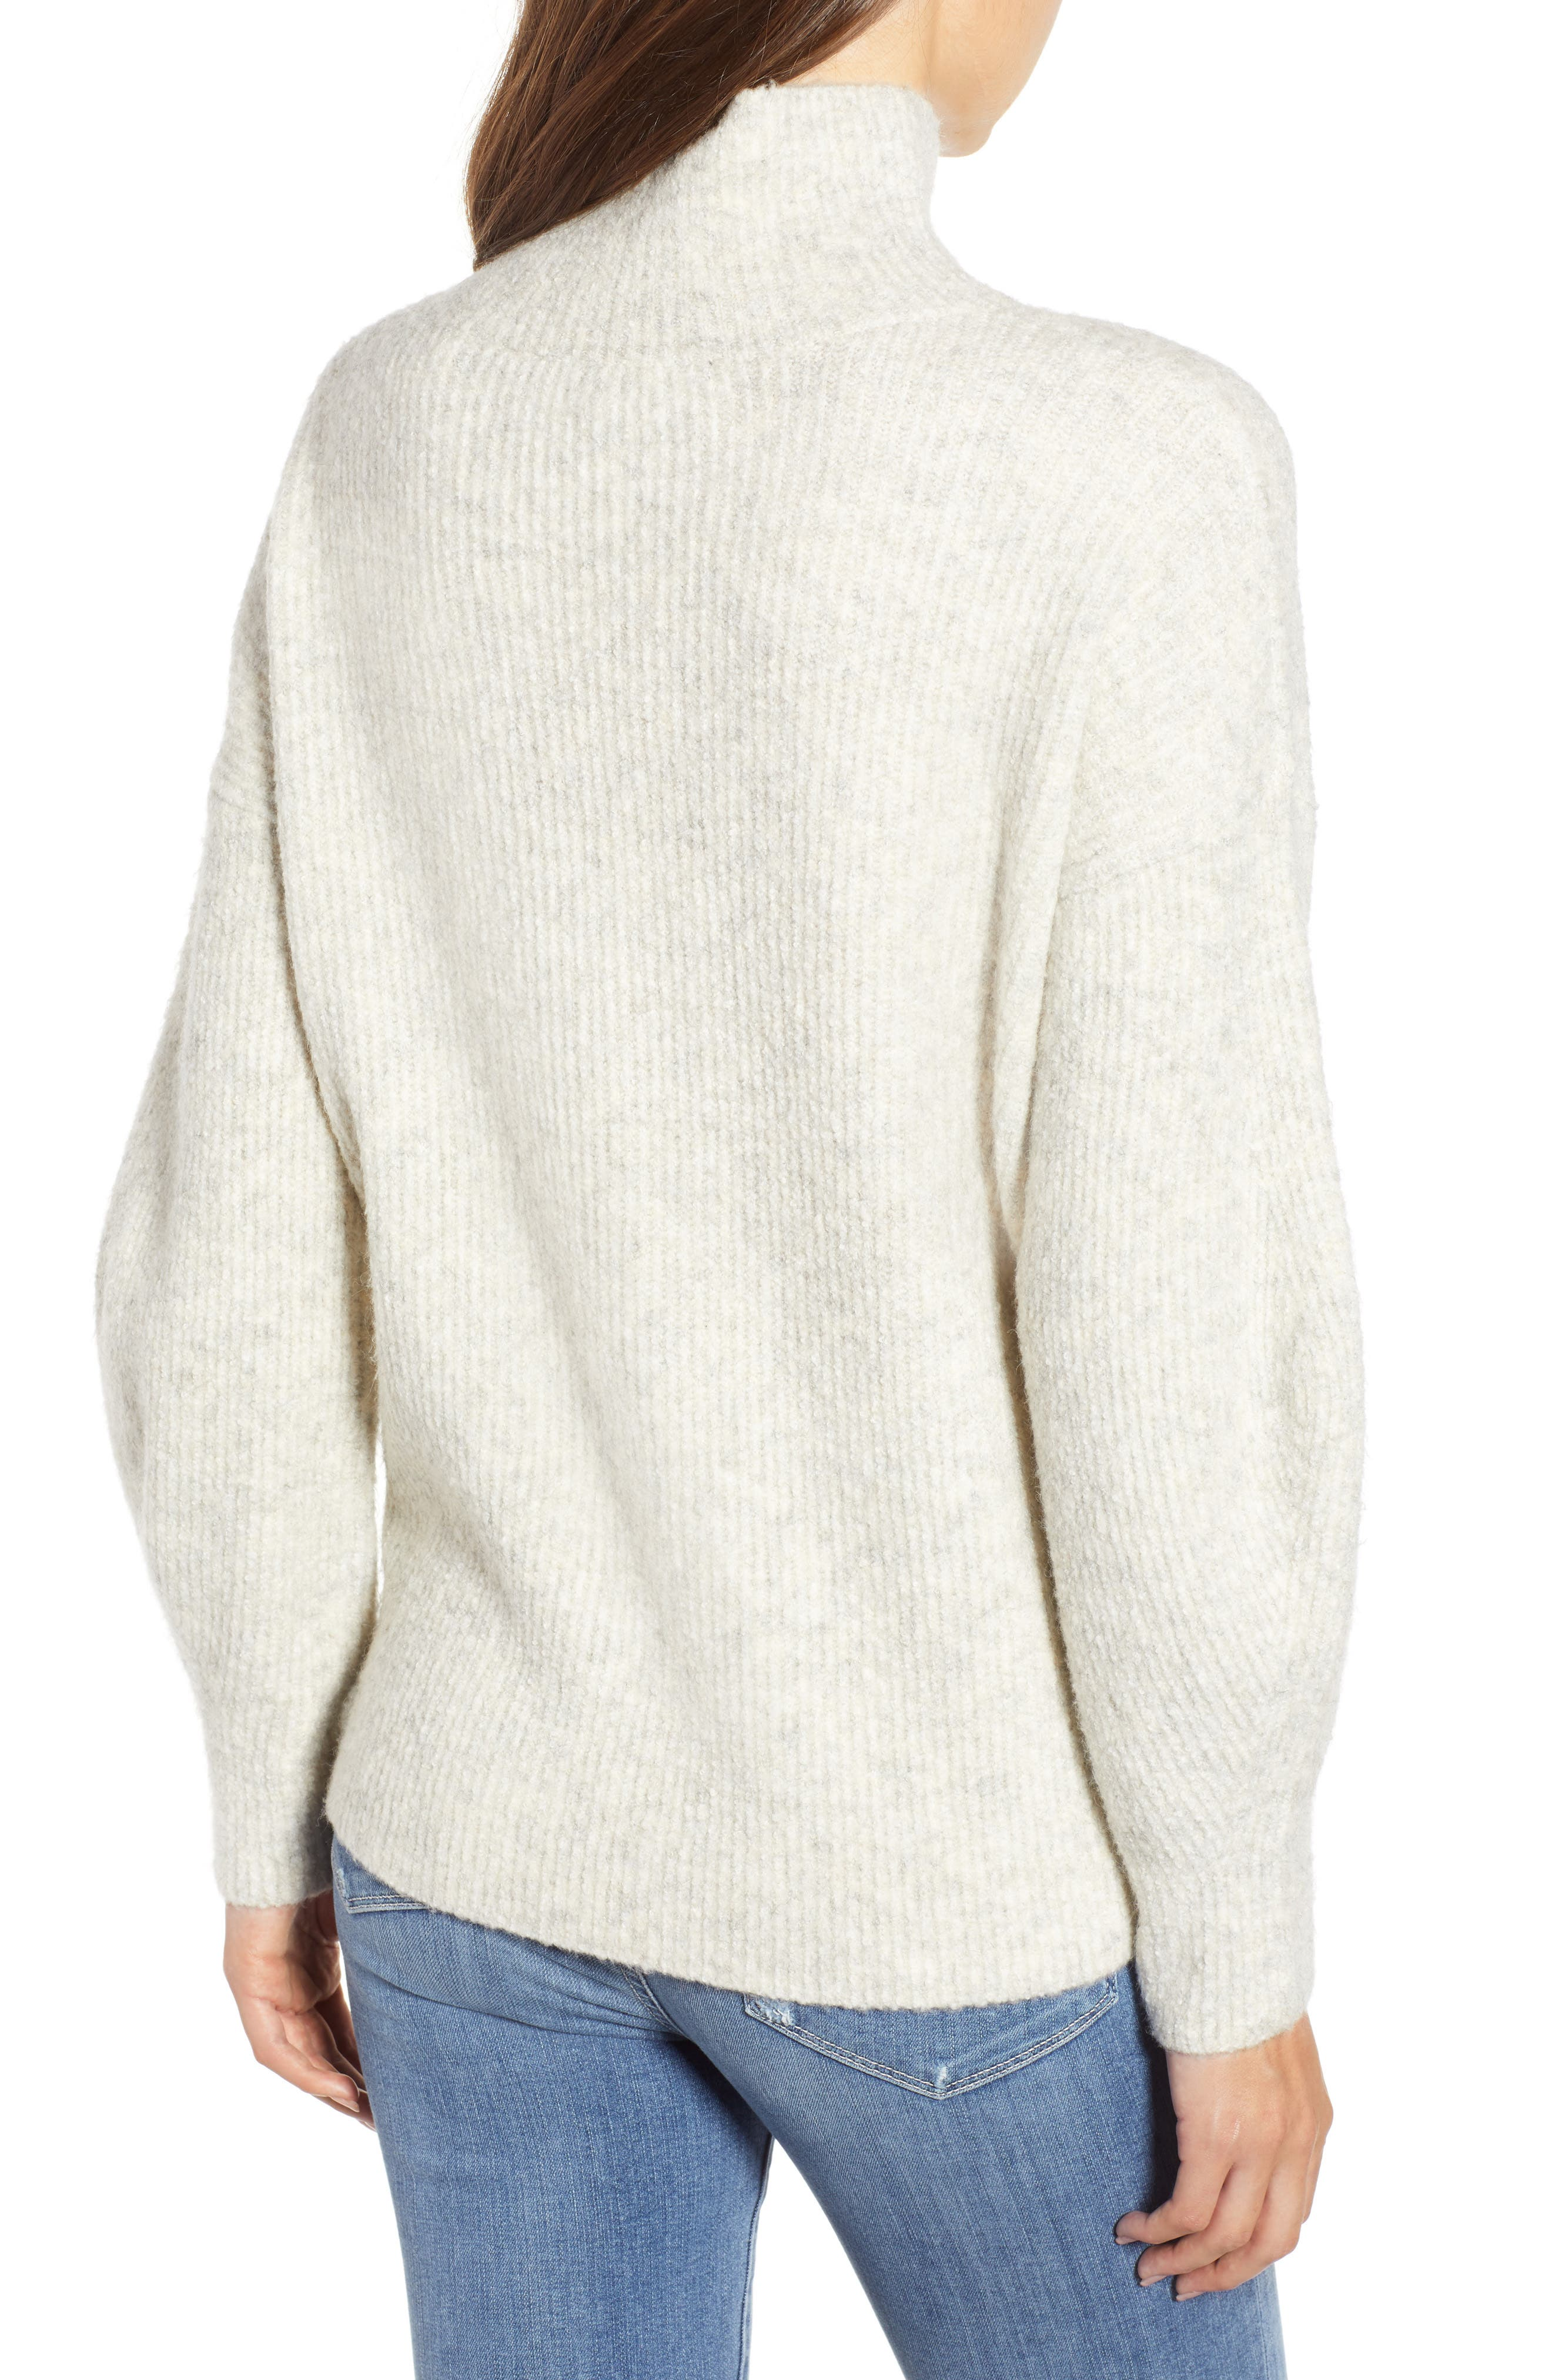 Urban Flossy Cowl Neck Sweater,                             Alternate thumbnail 2, color,                             OATMEAL